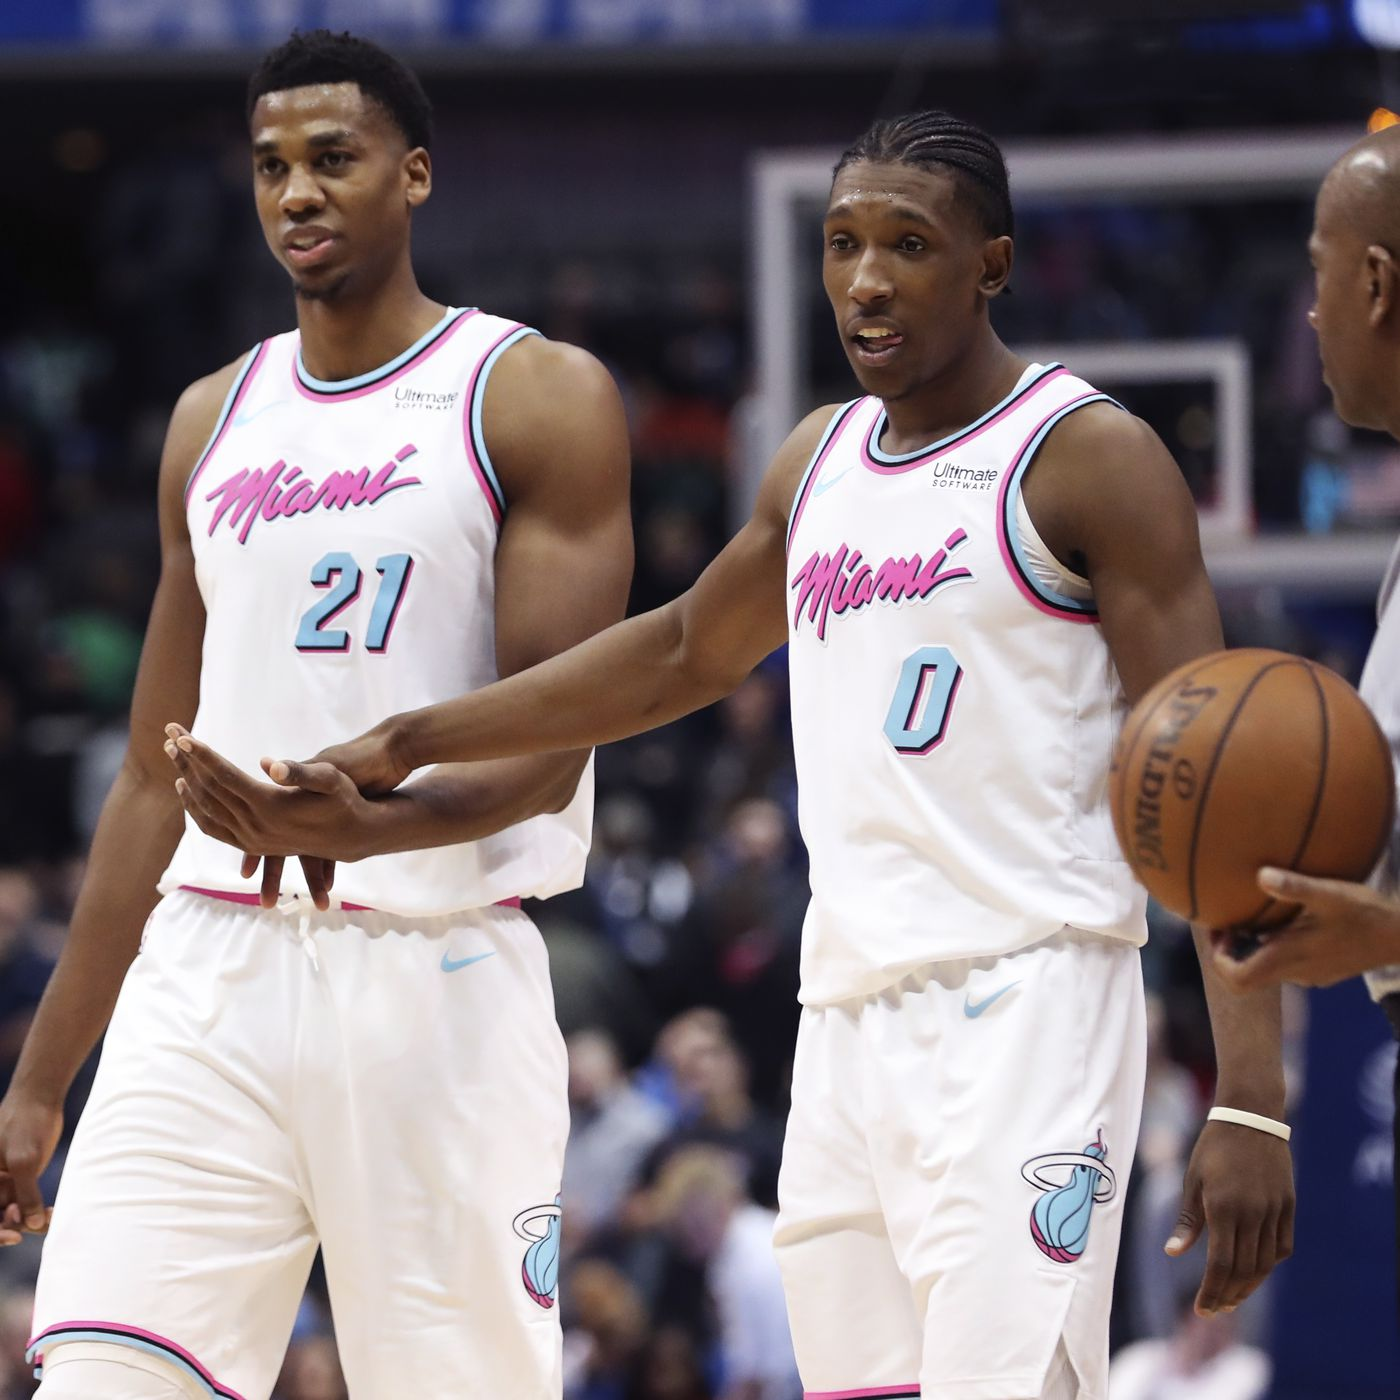 f2f9eff5e The 30th Anniversary Edition of the Miami Heat become the Detroit Bad Boys  of 2018-19  - Hot Hot Hoops